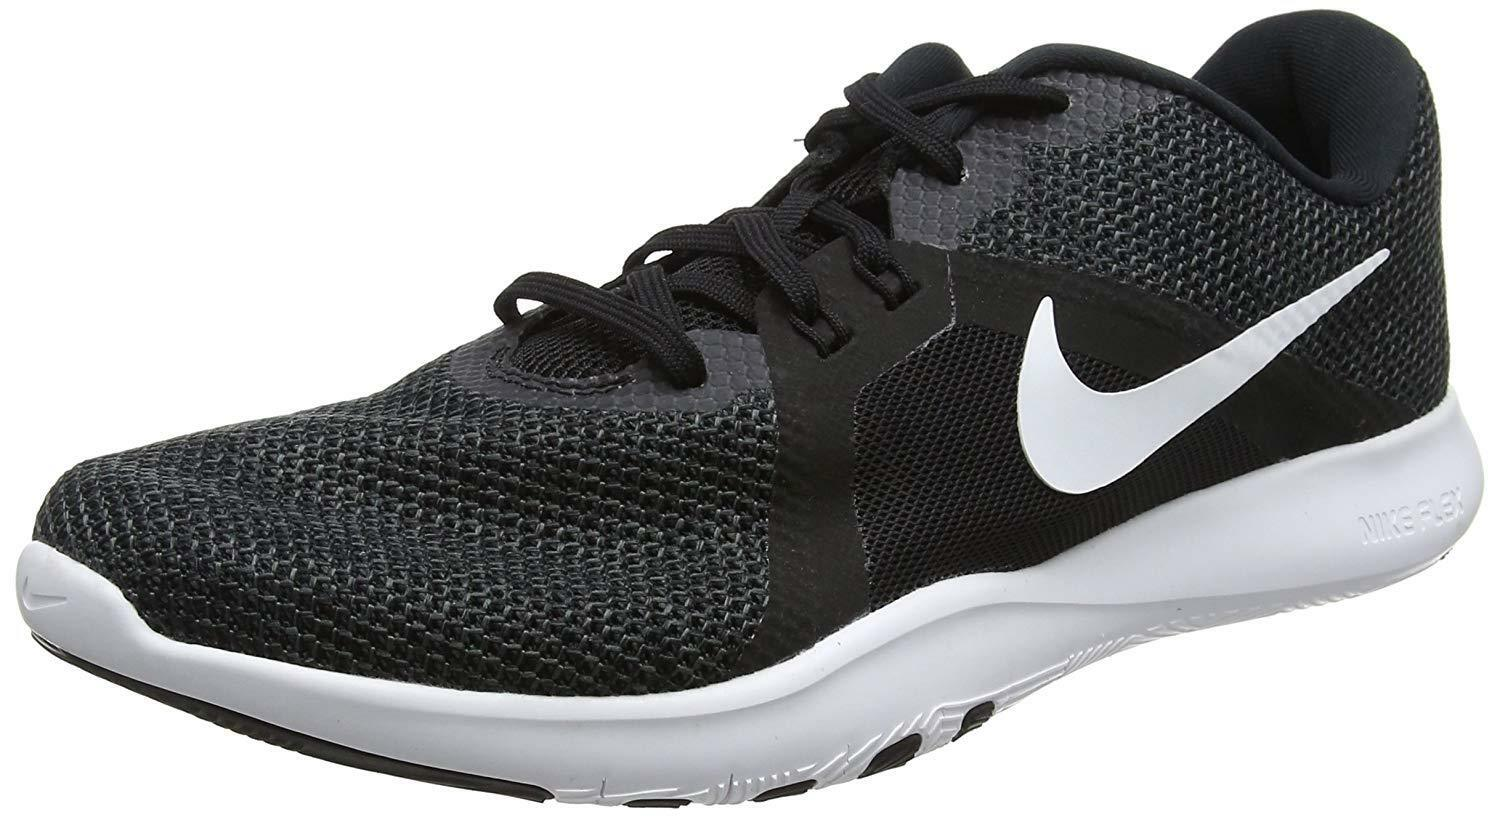 1727292038989 WMNS Nike Flex Trainer 8 VIII Black White Women Cross Training Shoes ...